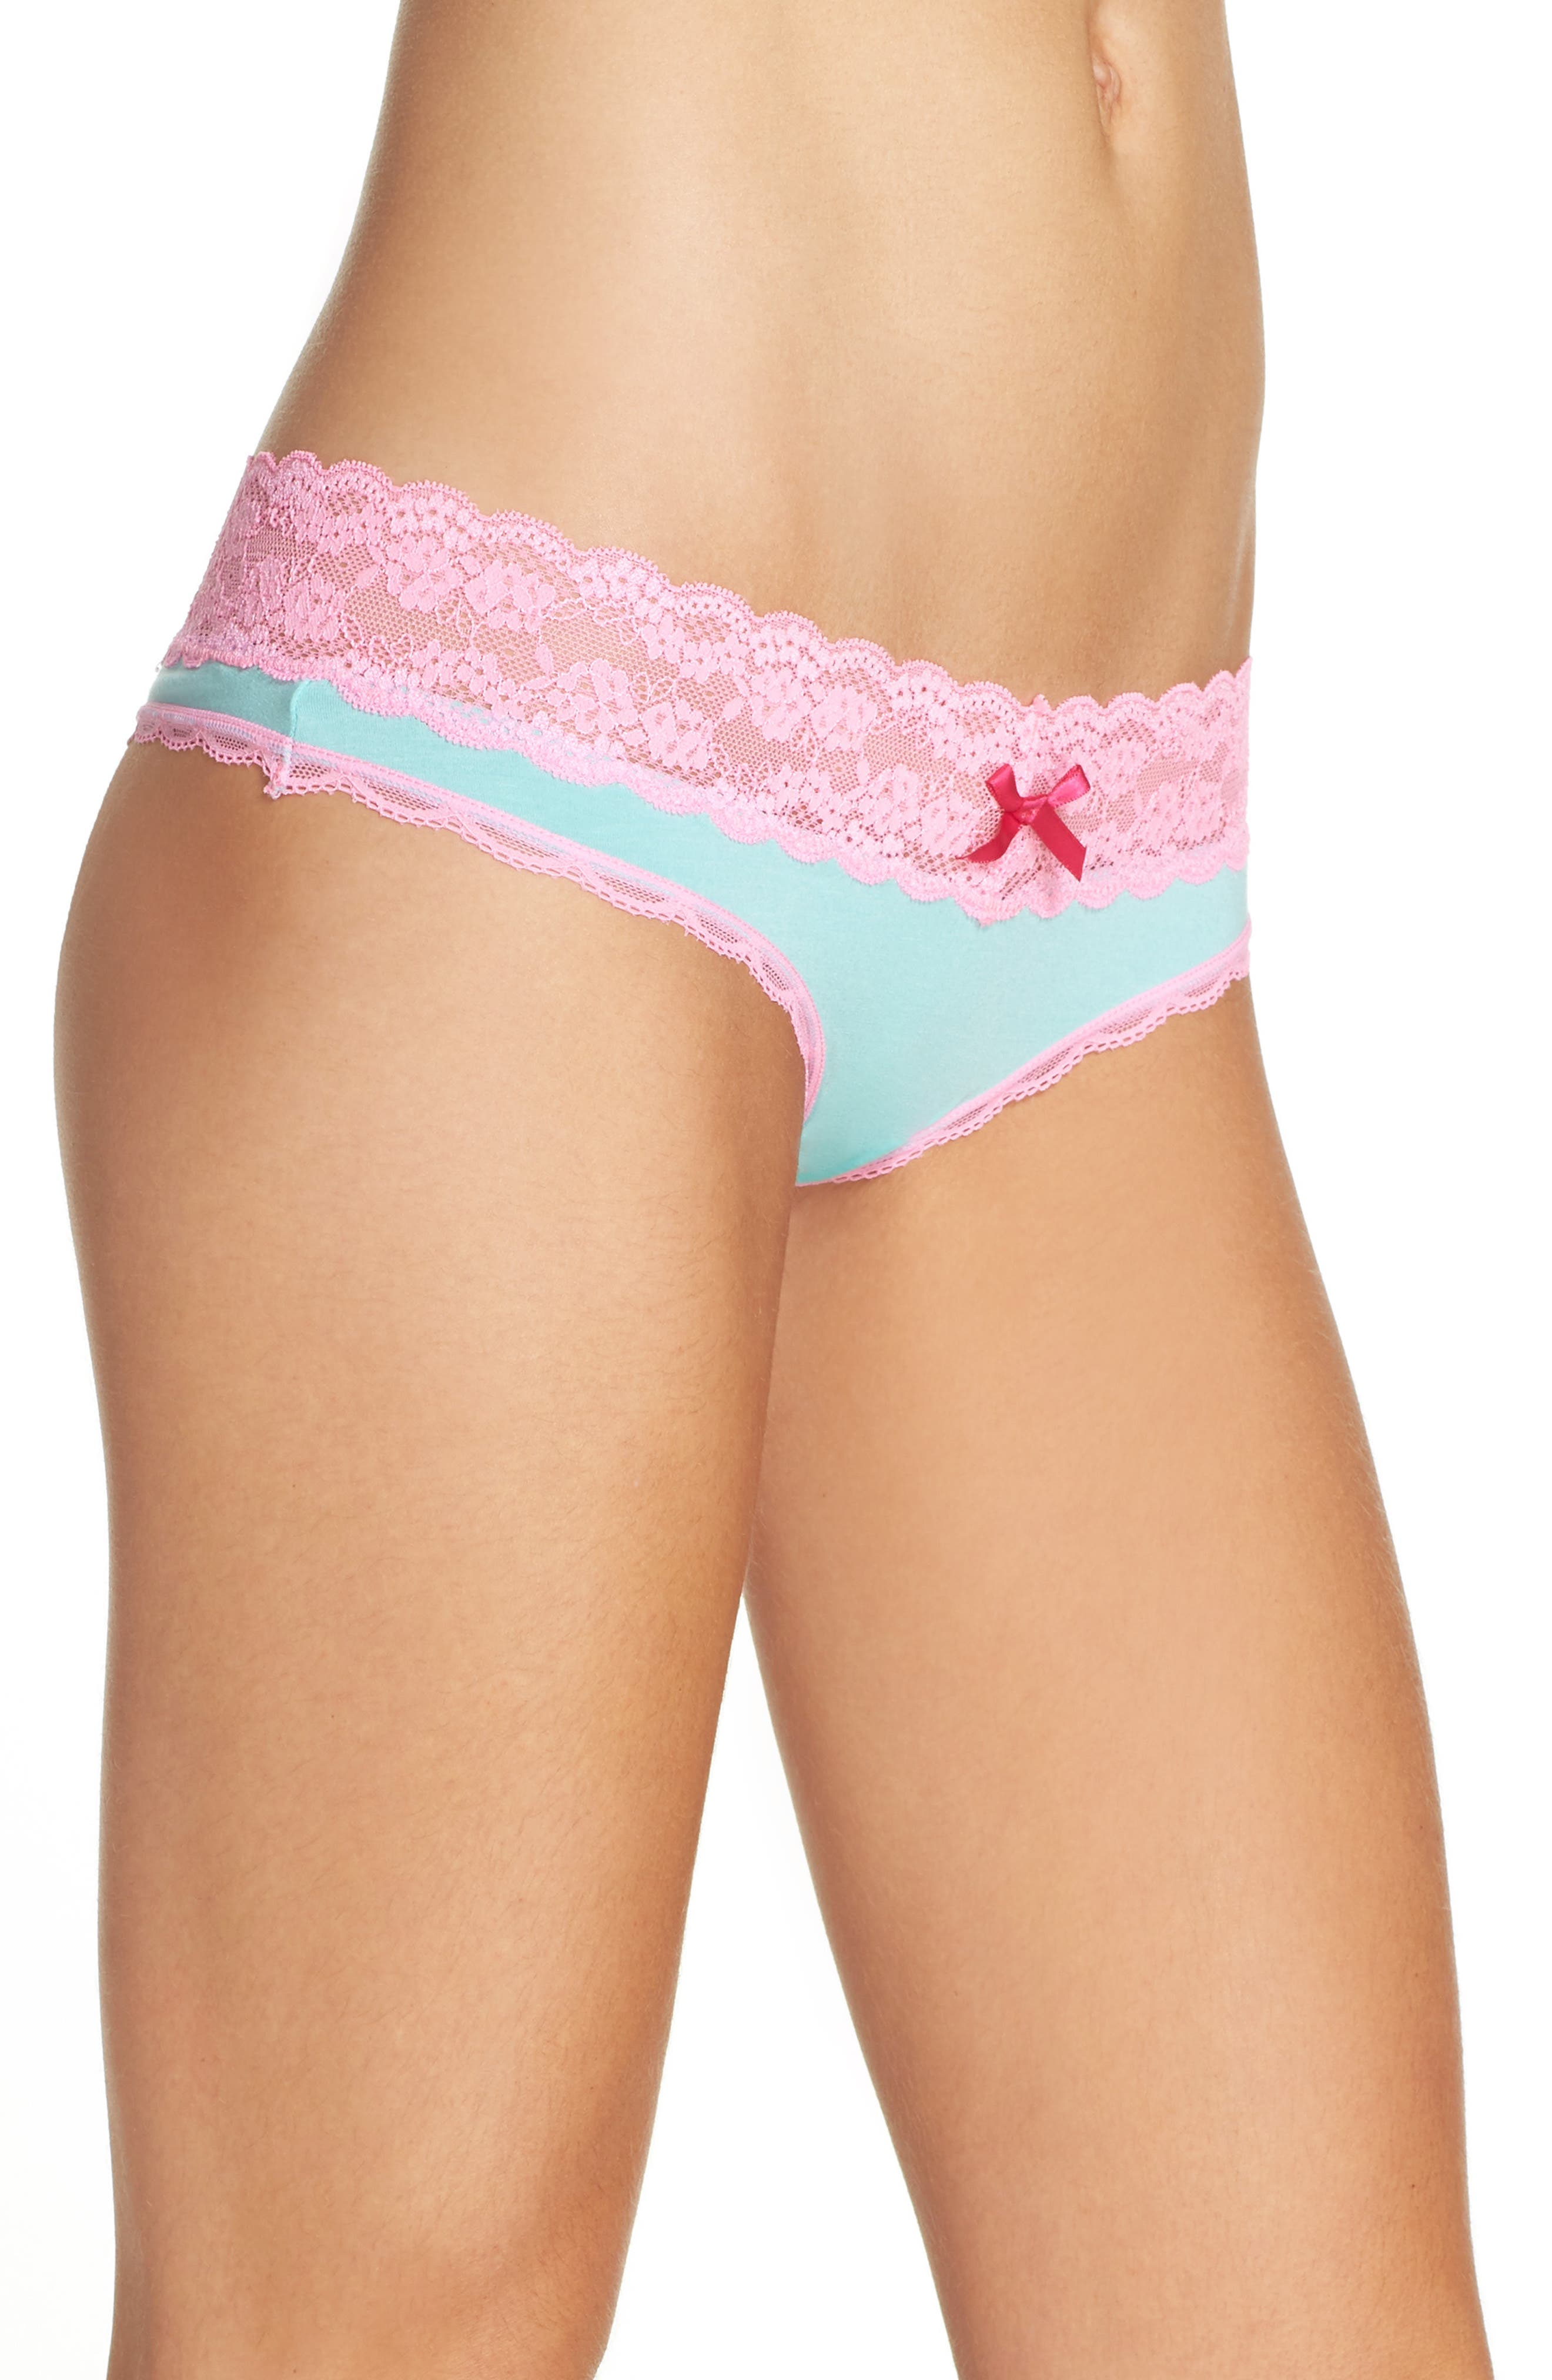 Alternate Image 3  - Honeydew Intimates Lace Trim Low Rise Thong (3 for $33)